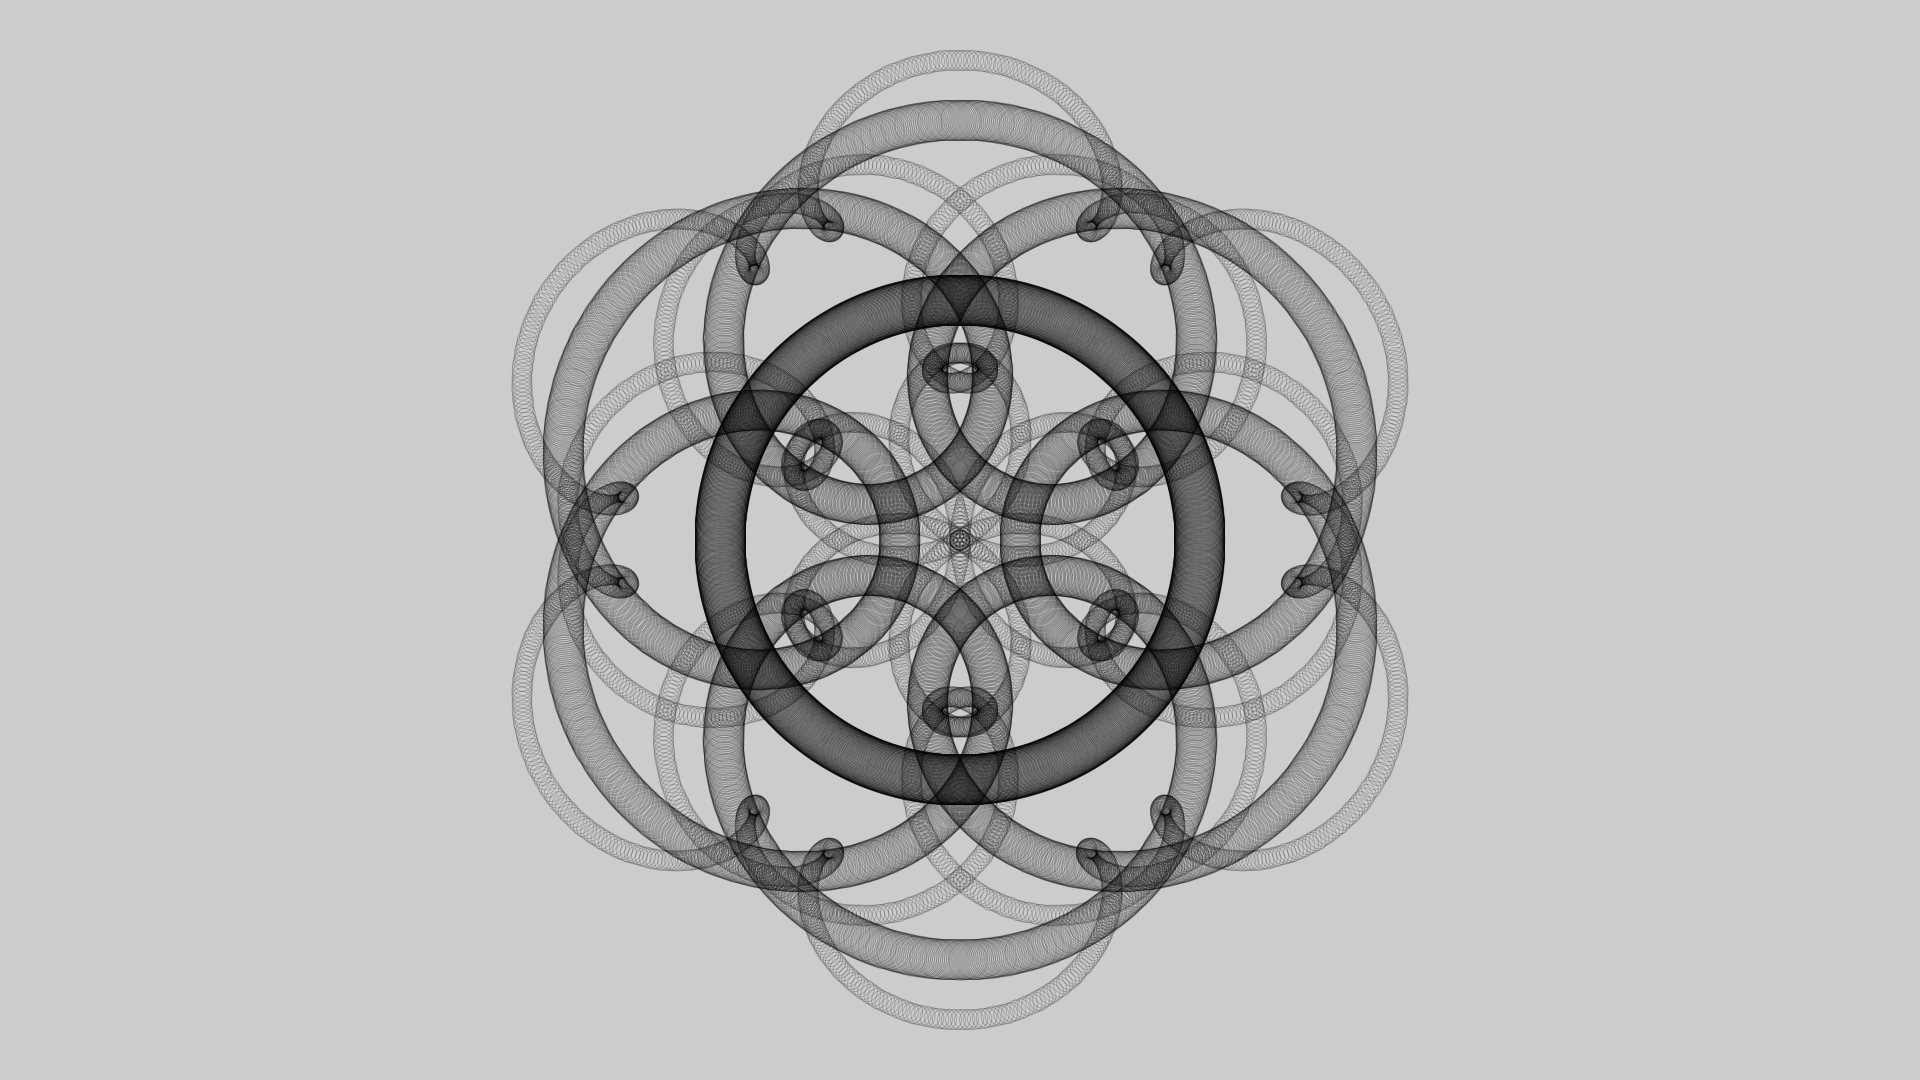 orrery-2015-3-23-11-49-584800-800-200.png